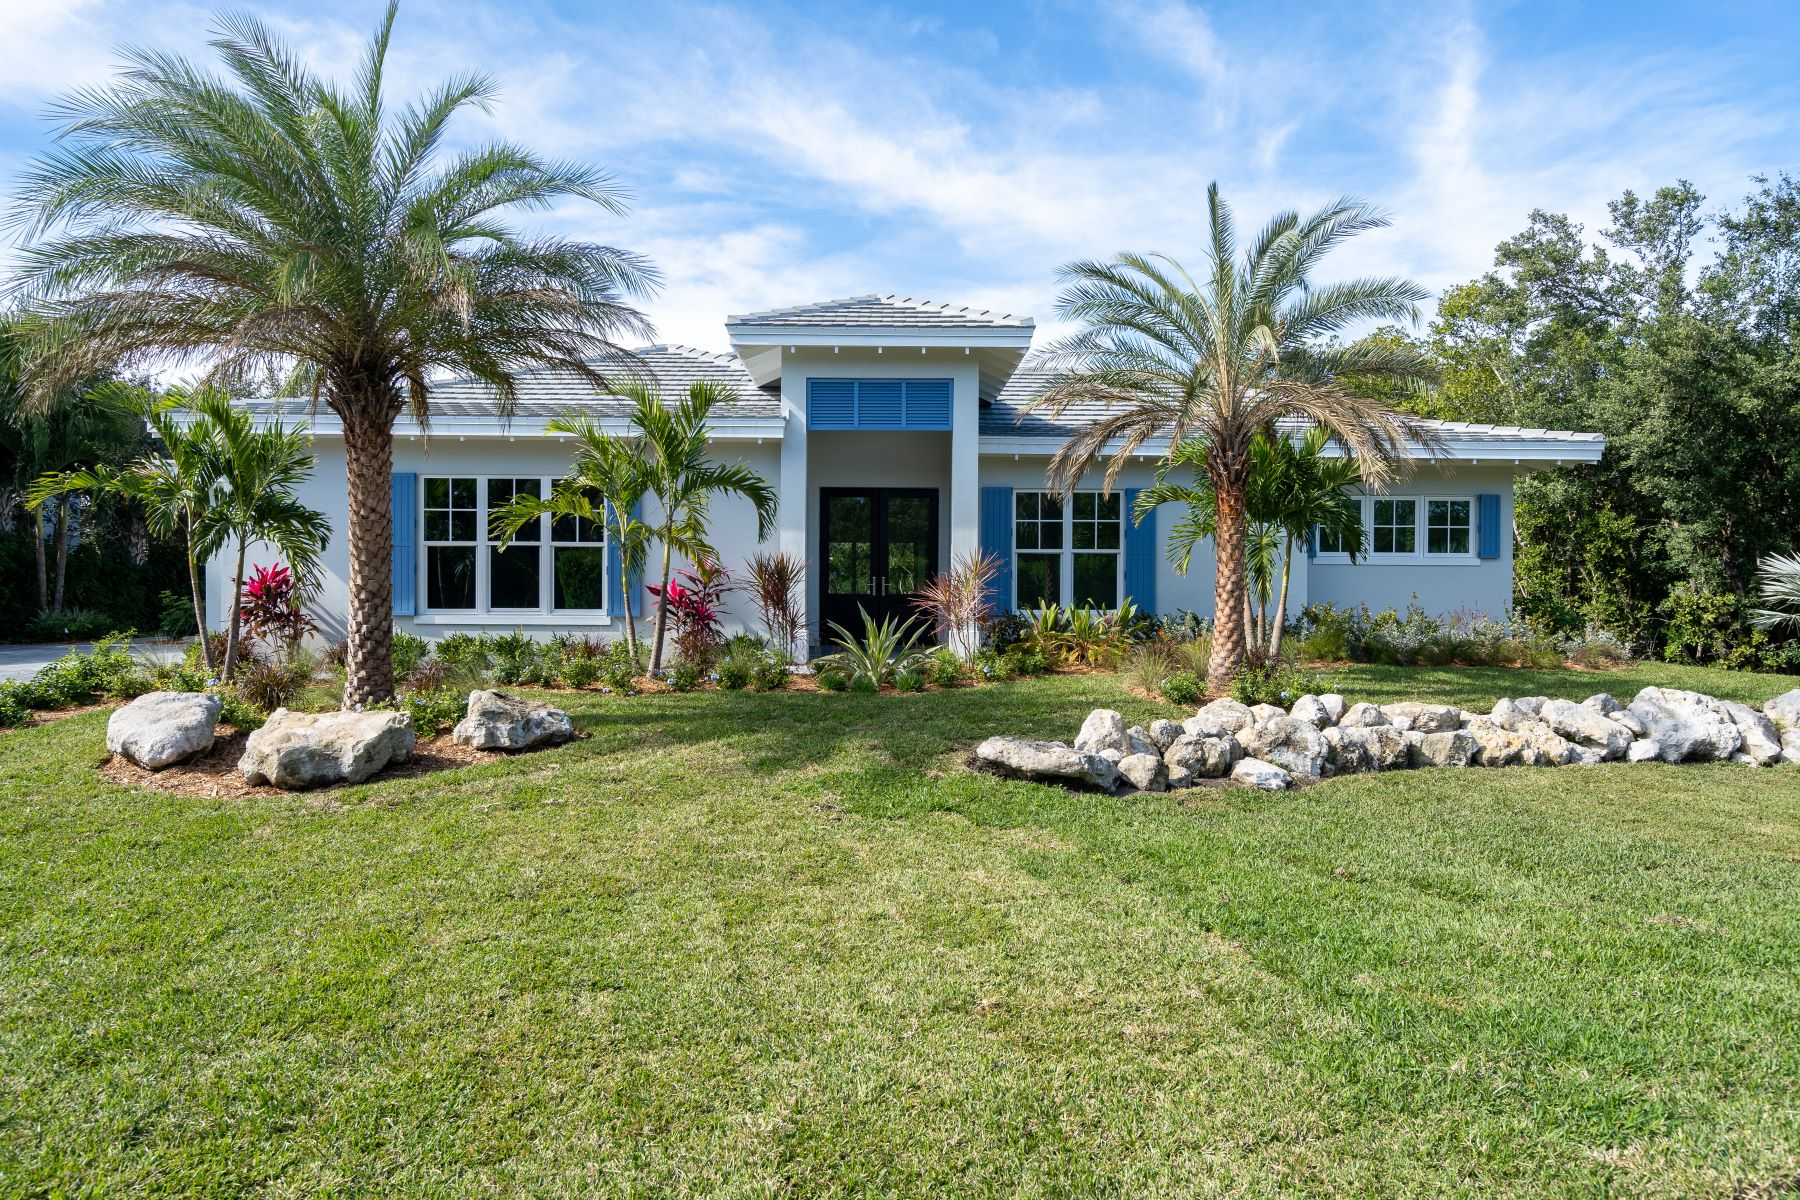 Additional photo for property listing at 1409 Old Winter Beach Road Indian River Shores, フロリダ 32963 アメリカ